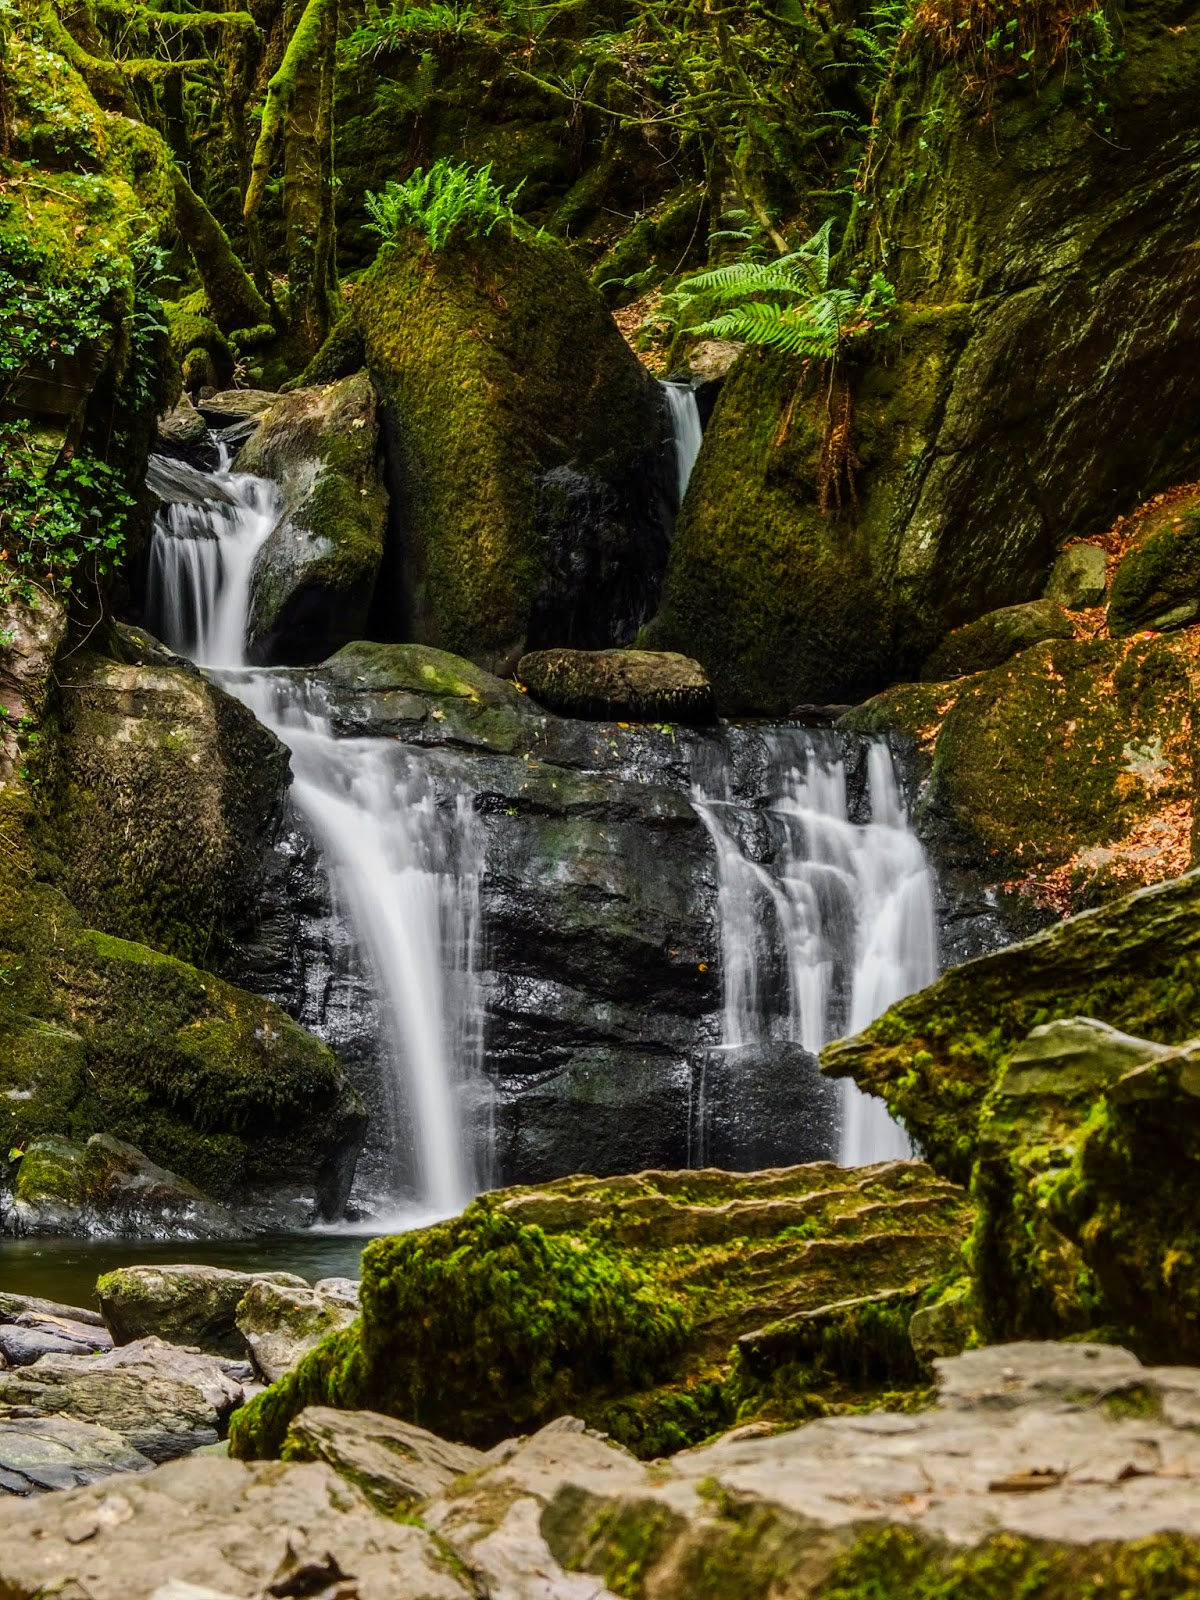 Mullinhassig Waterfall in County Cork photographed with a slow shutter speed.